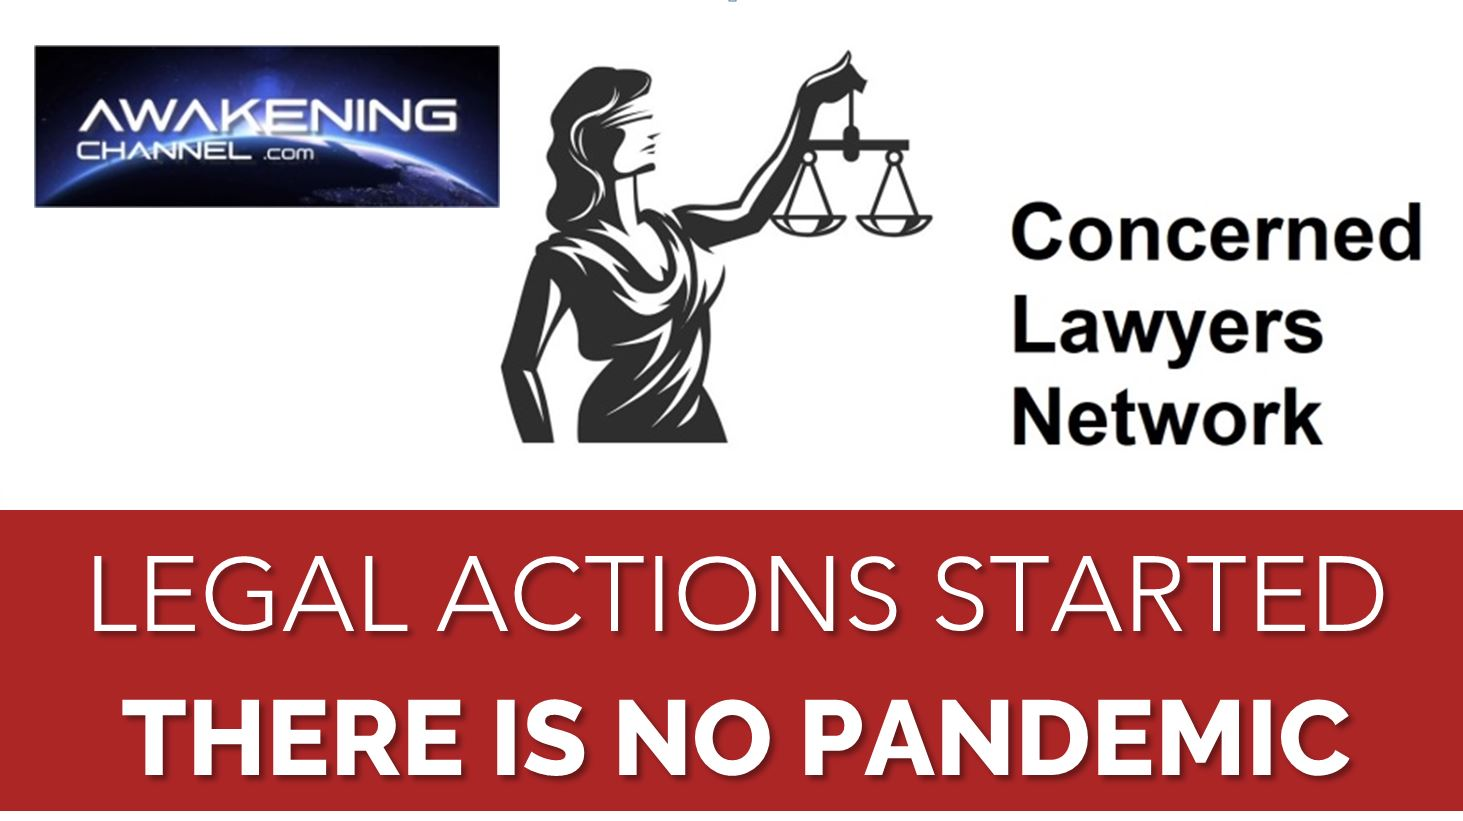 Network of Lawyers: Legal Actions Started, there is No Pandemic || Awakening Channel